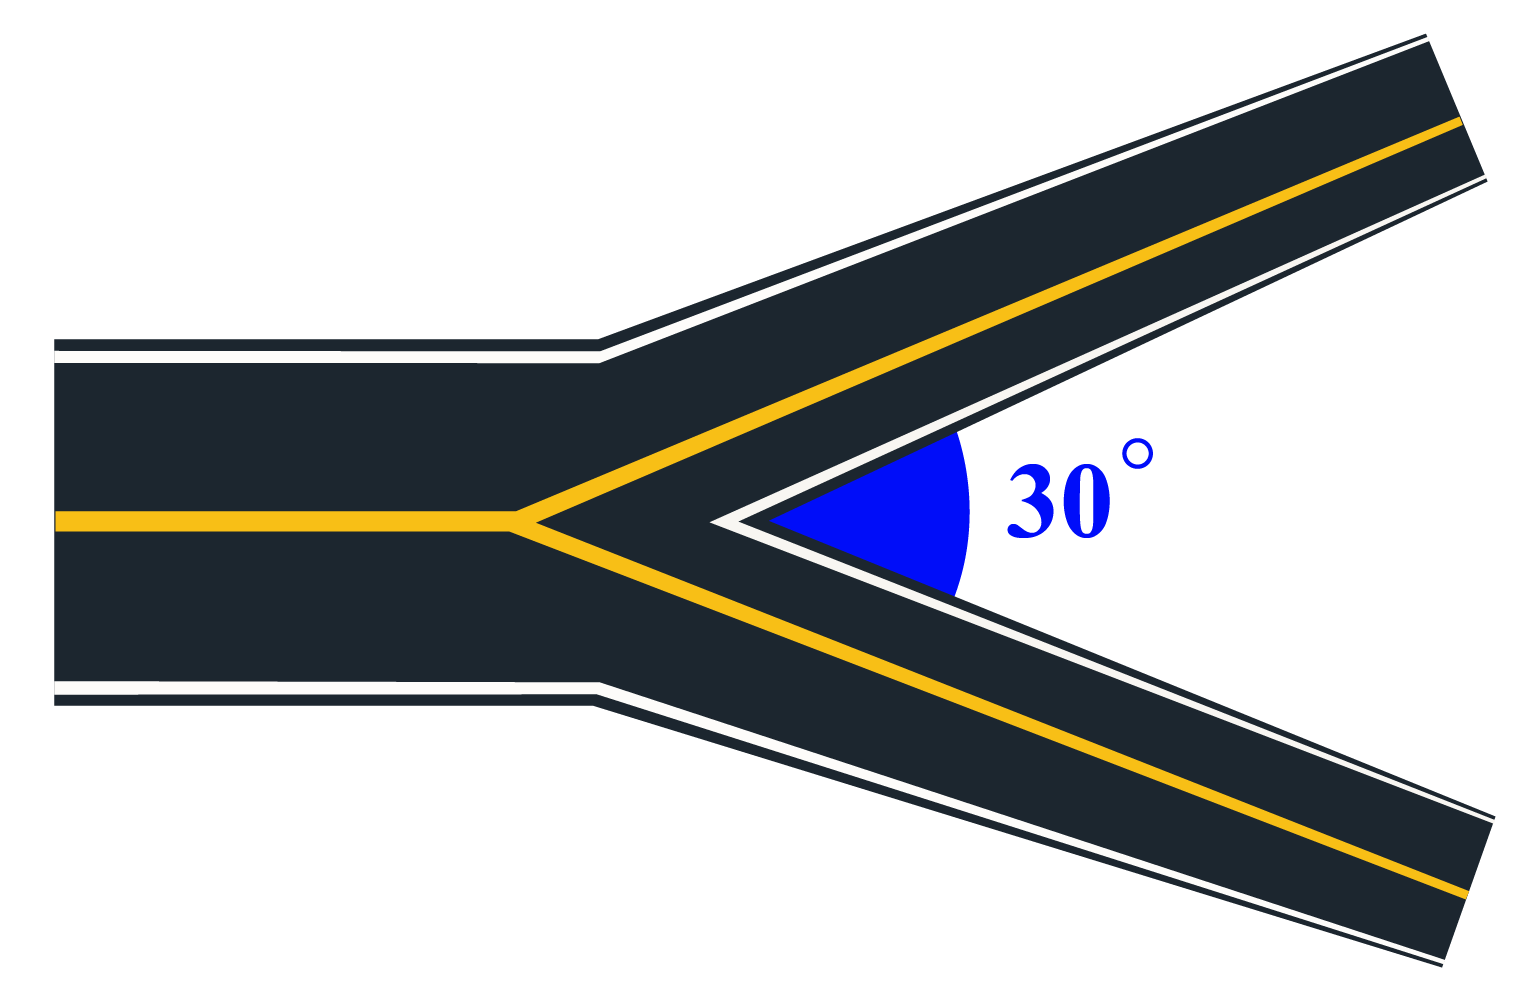 30-degree angle on road